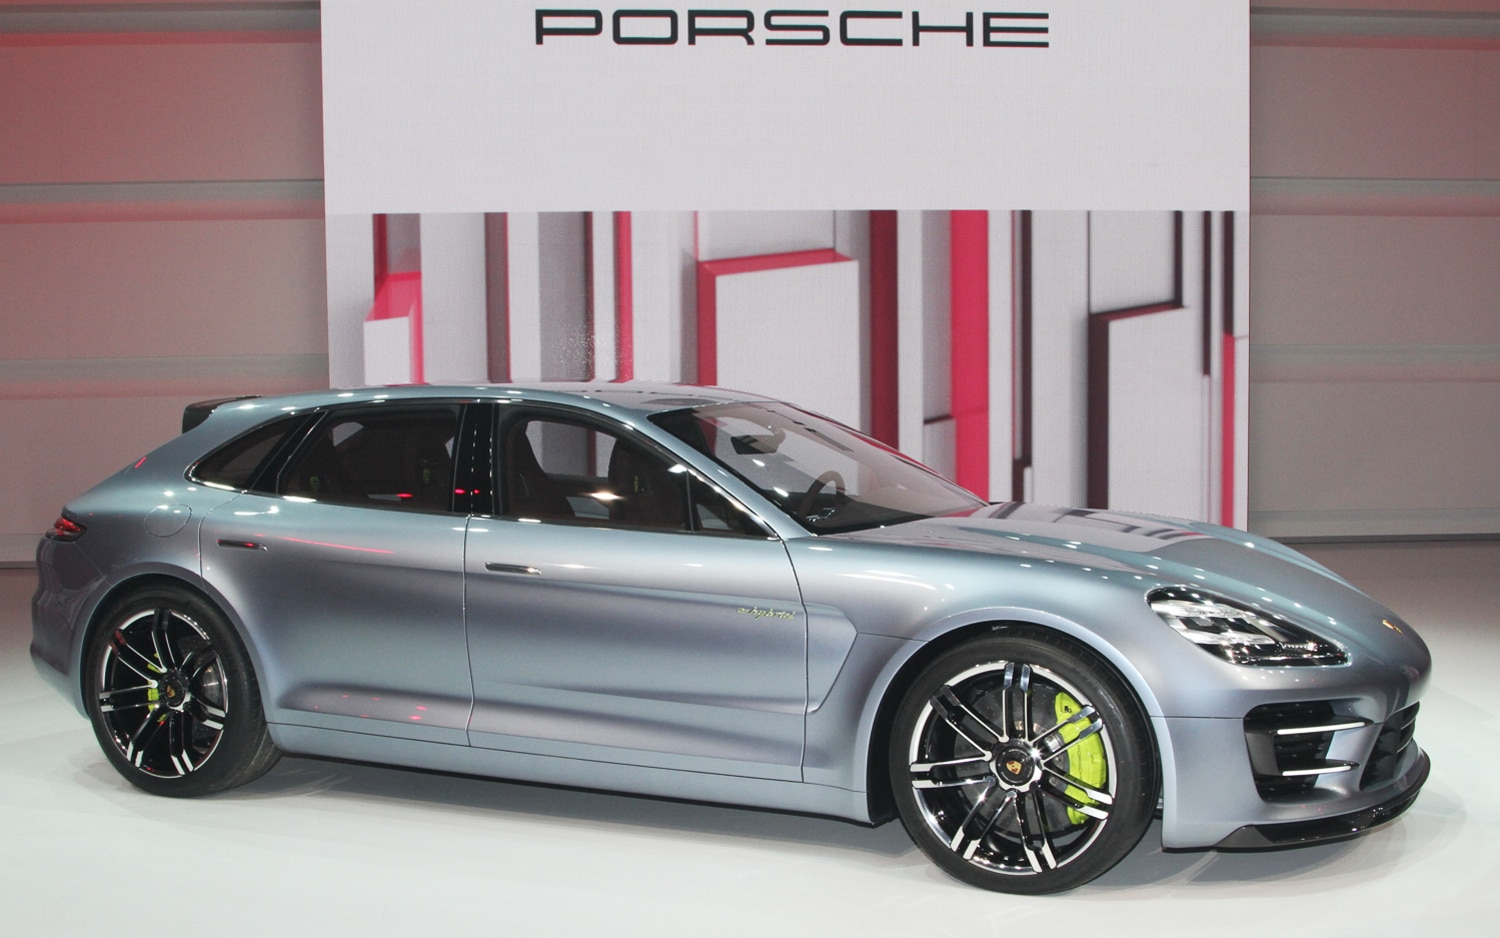 Porsche panamera sport turismo concept first look automobile porsche panamera sport turismo concept front three quarters sciox Image collections